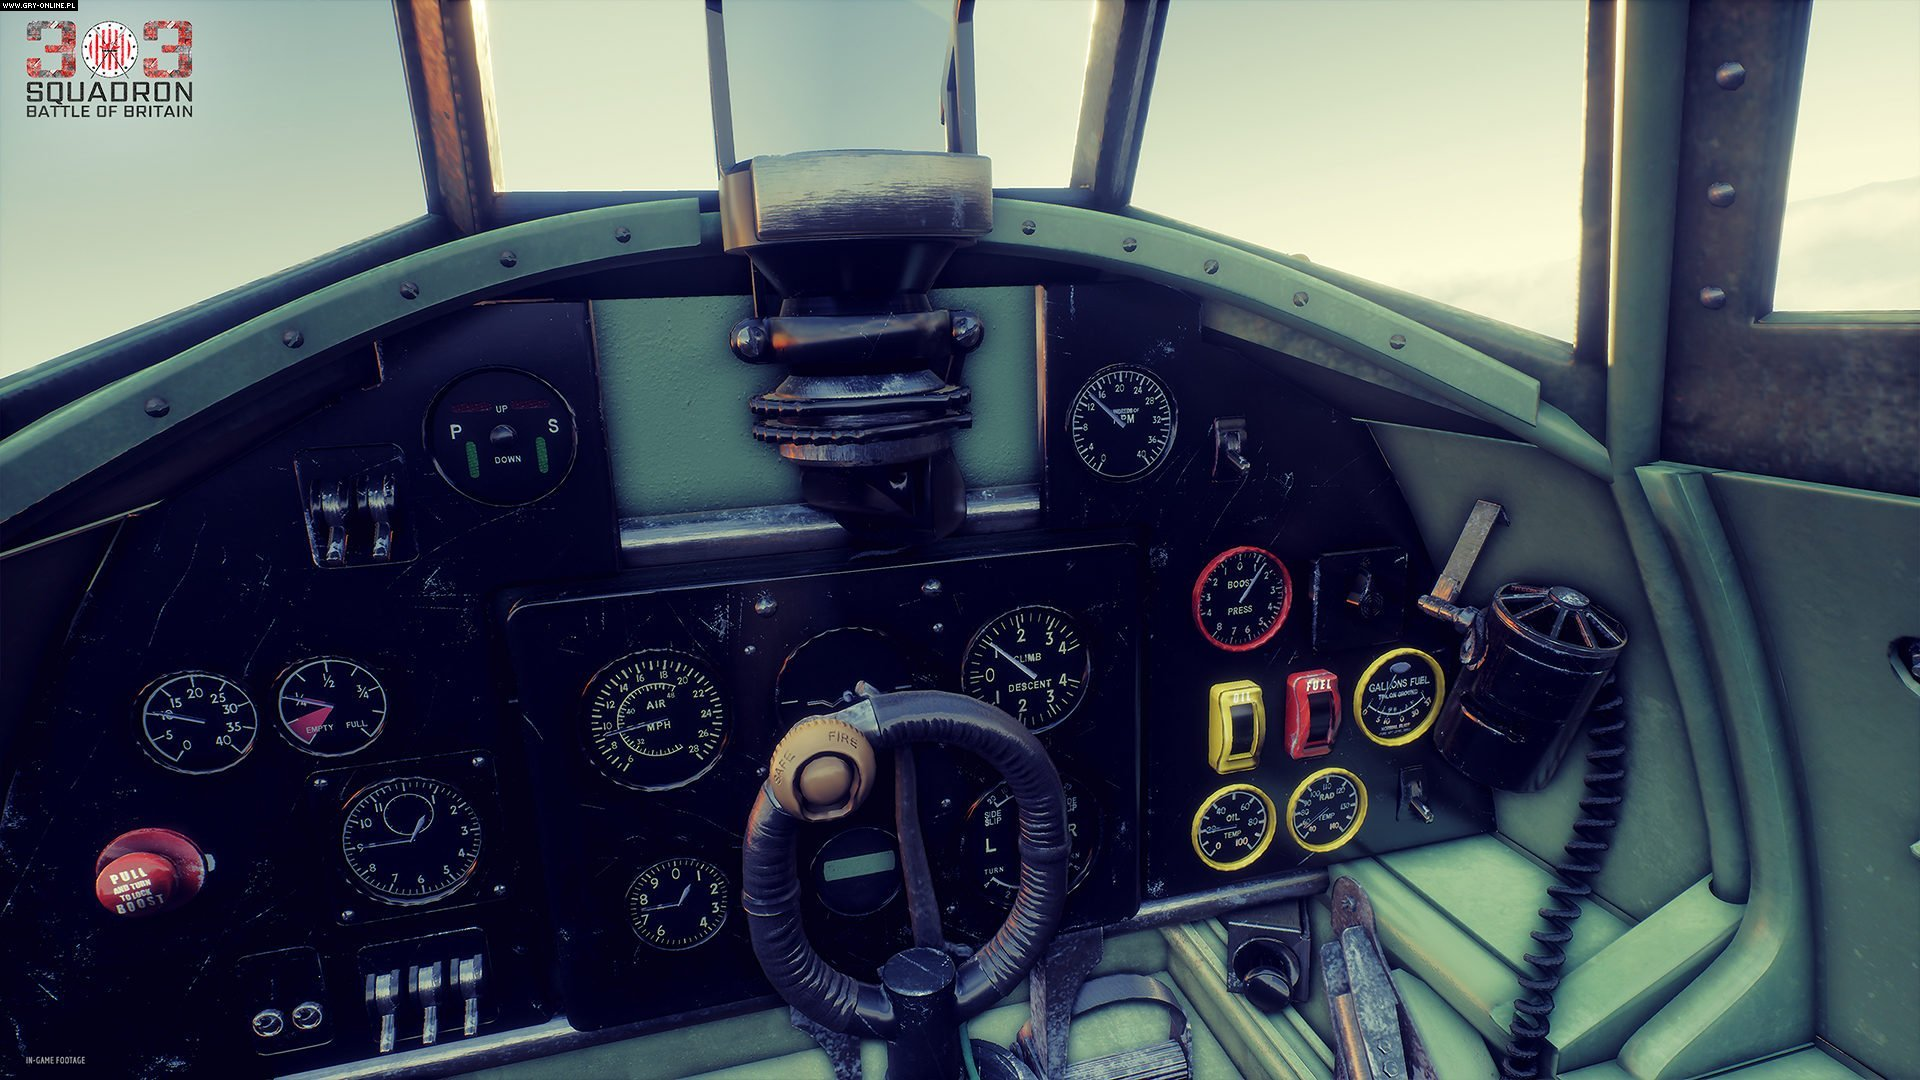 303 Squadron: Battle of Britain PC, PS4, XONE, Switch Games Image 2/7, Atomic Jelly, Movie Games